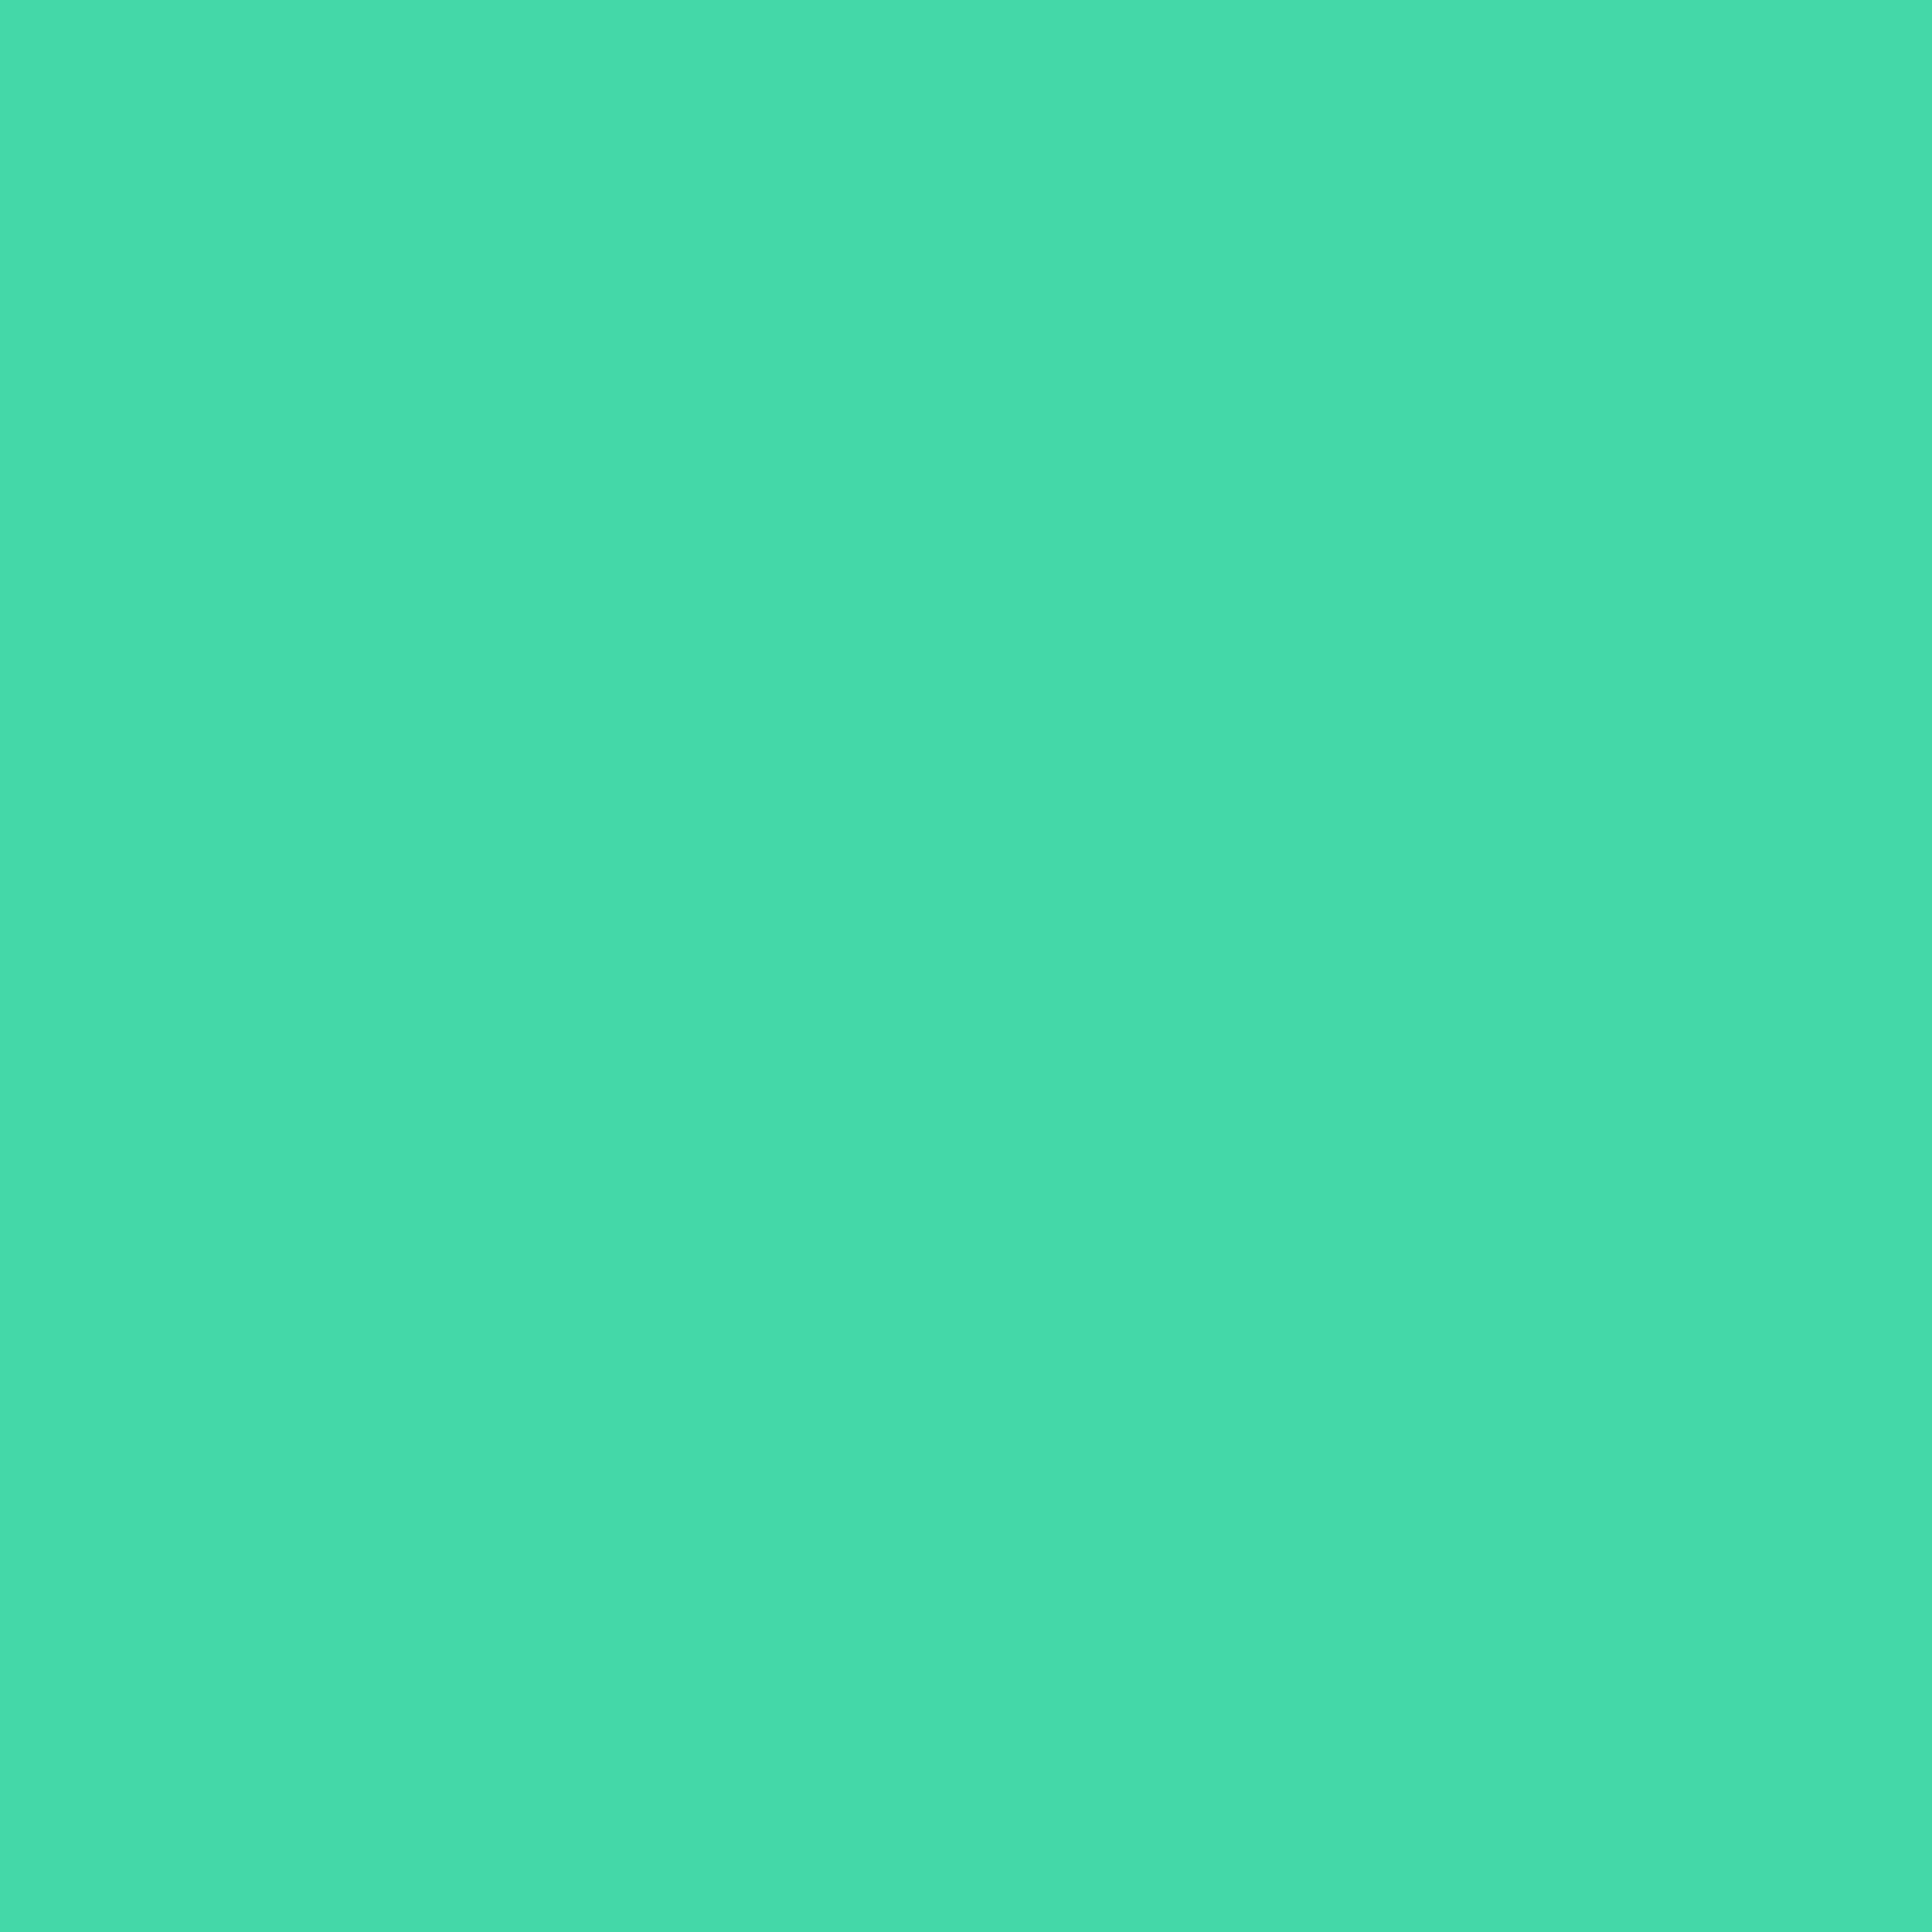 3600x3600 Eucalyptus Solid Color Background